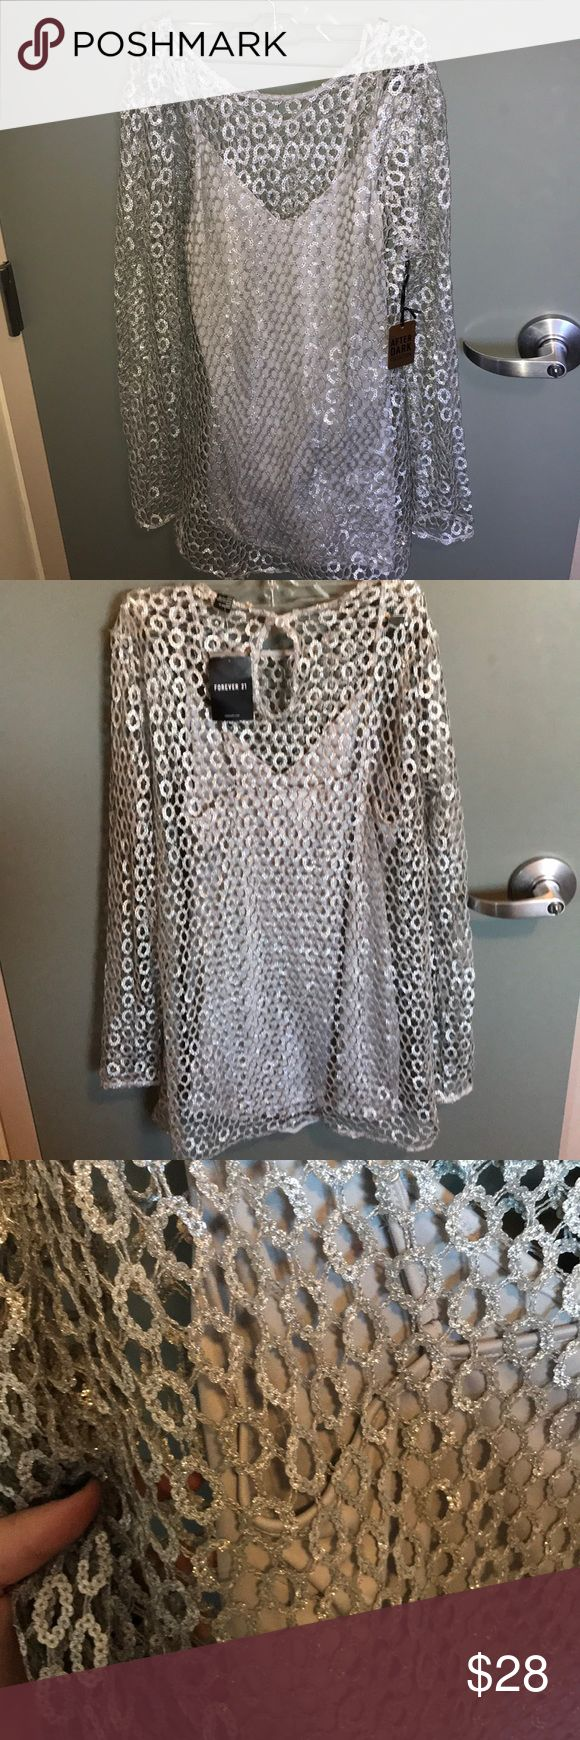 Shift dress! Silver & sparkly! Size L & brand new! Silver sparkly dress! Size Large and brand new! Has a slip under it. Literally SO cute in person. Feel free to make an offer!!! :) Forever 21 Dresses Mini